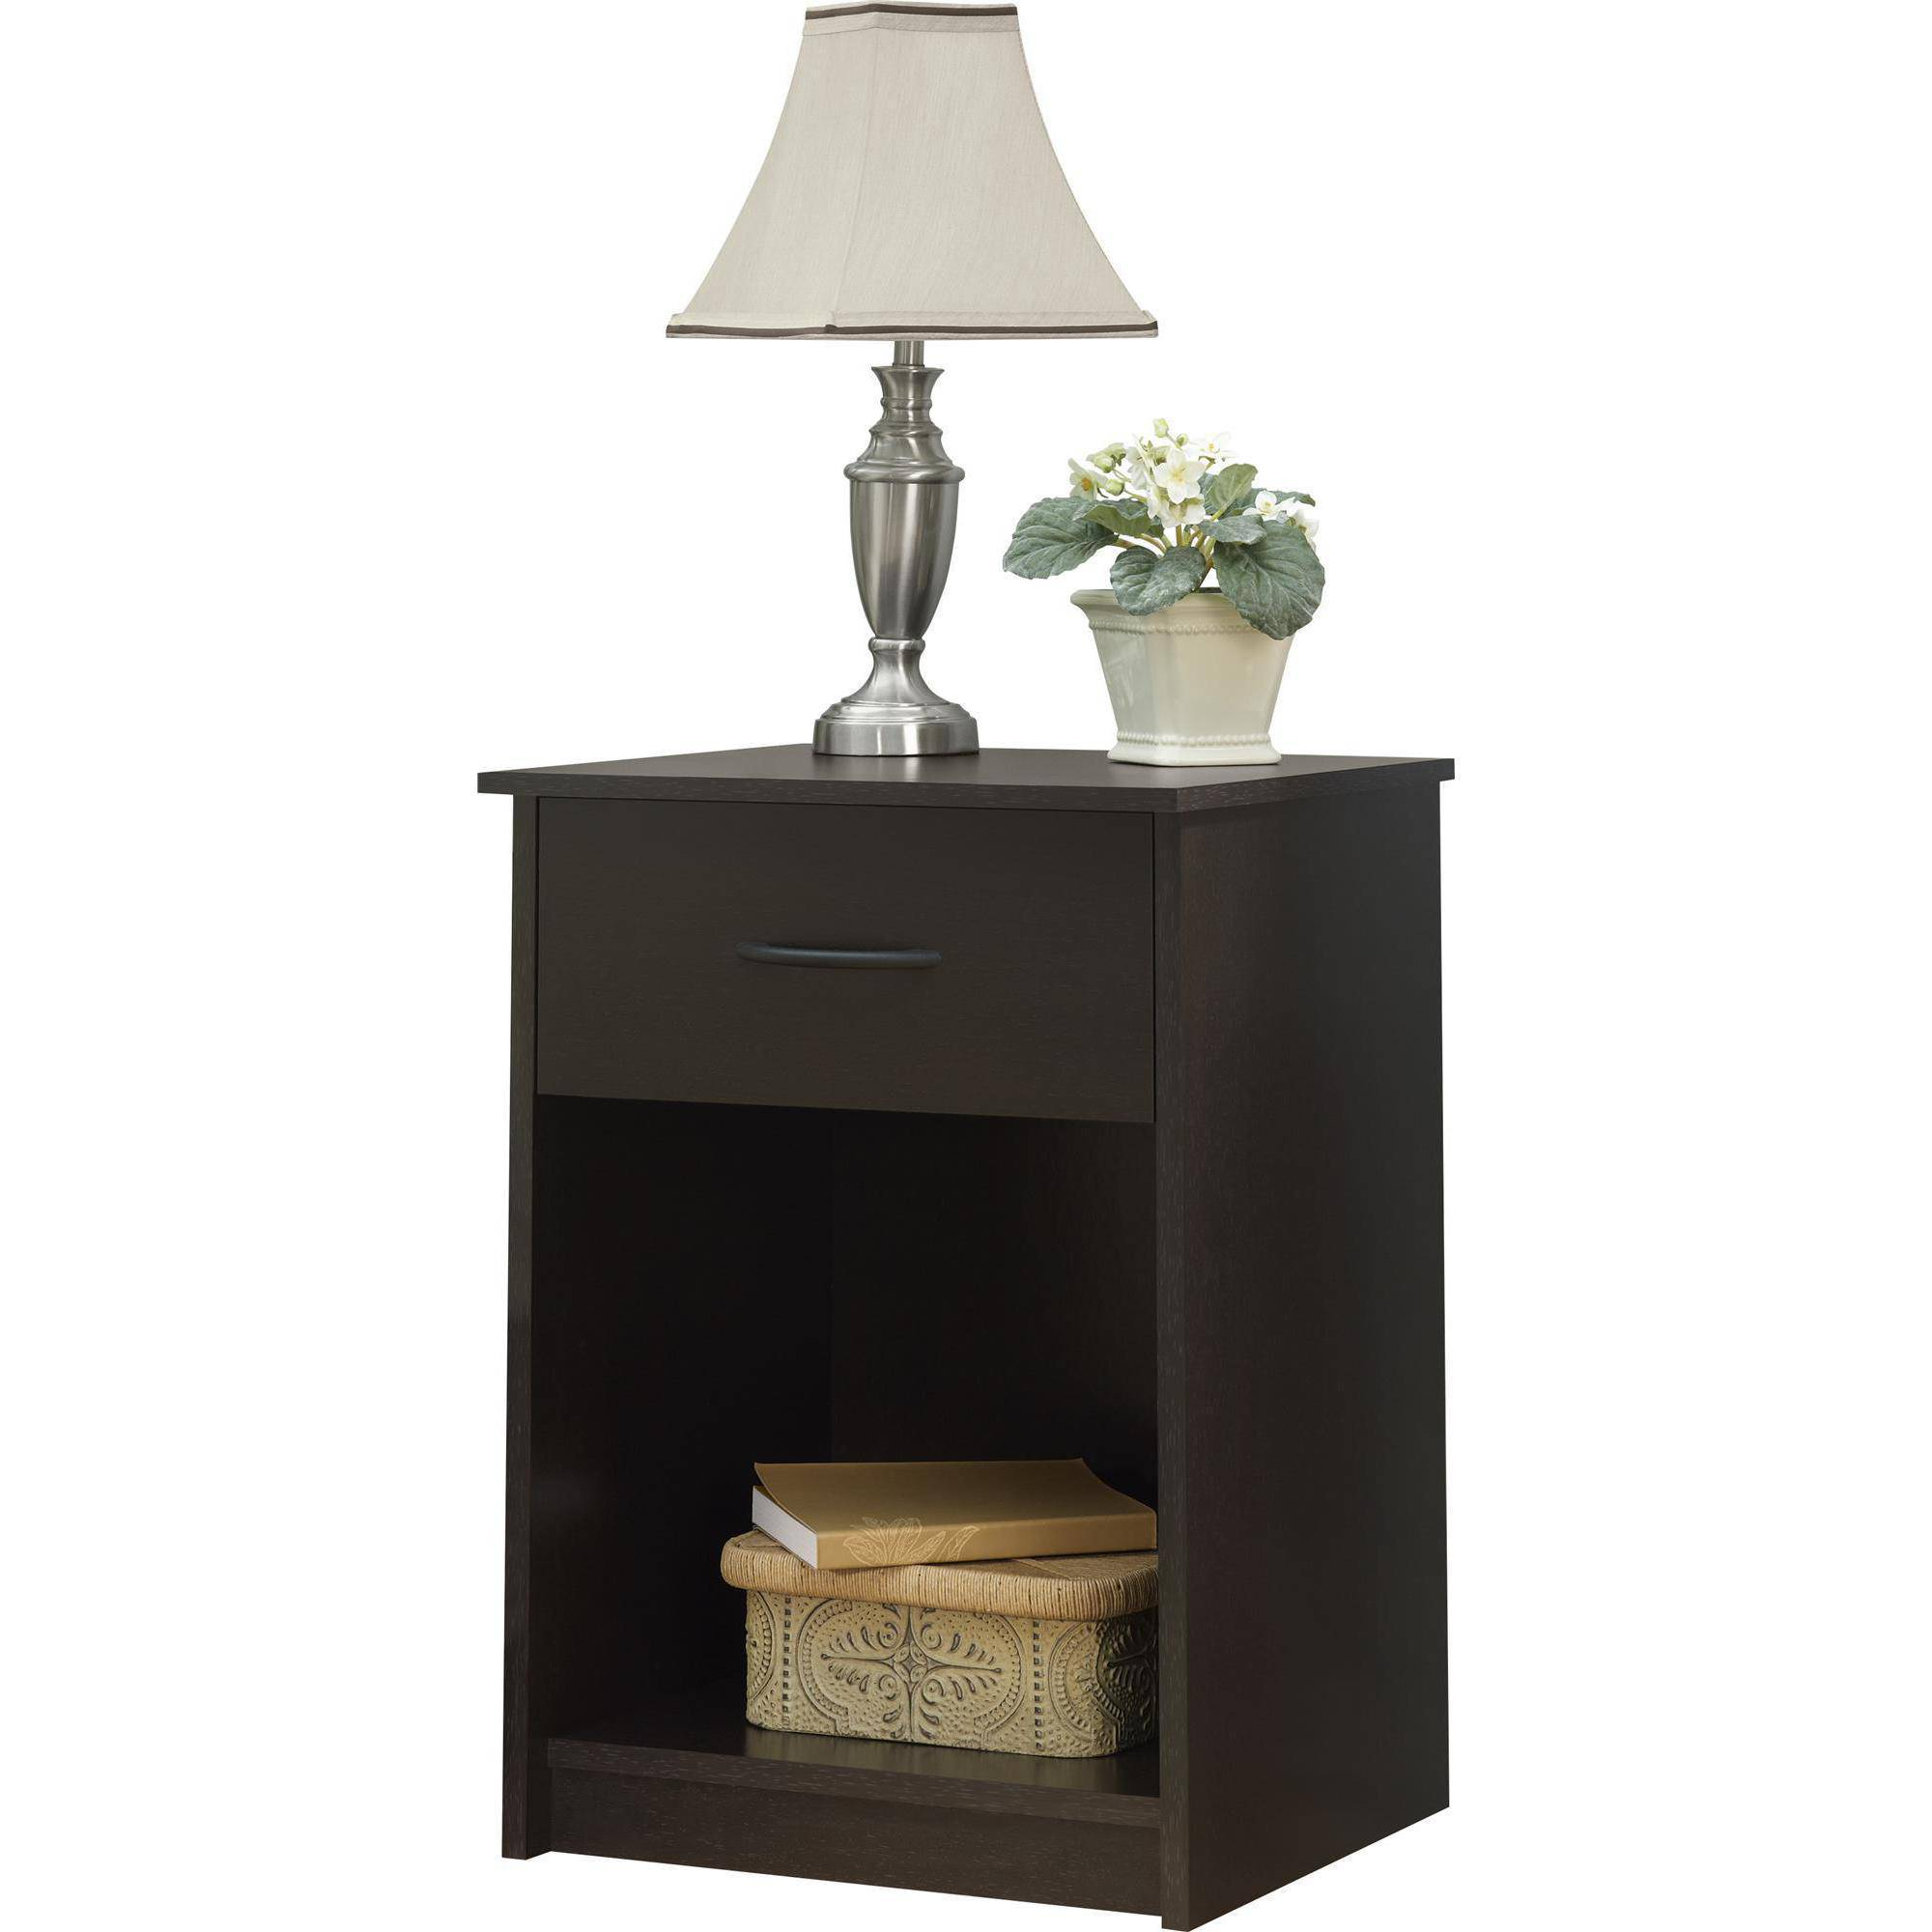 set espresso nightstands accent end table bedside bedroom and tables furniture drawer coffee with glass top storage unfinished pub long for hallway built pallets dark wood side